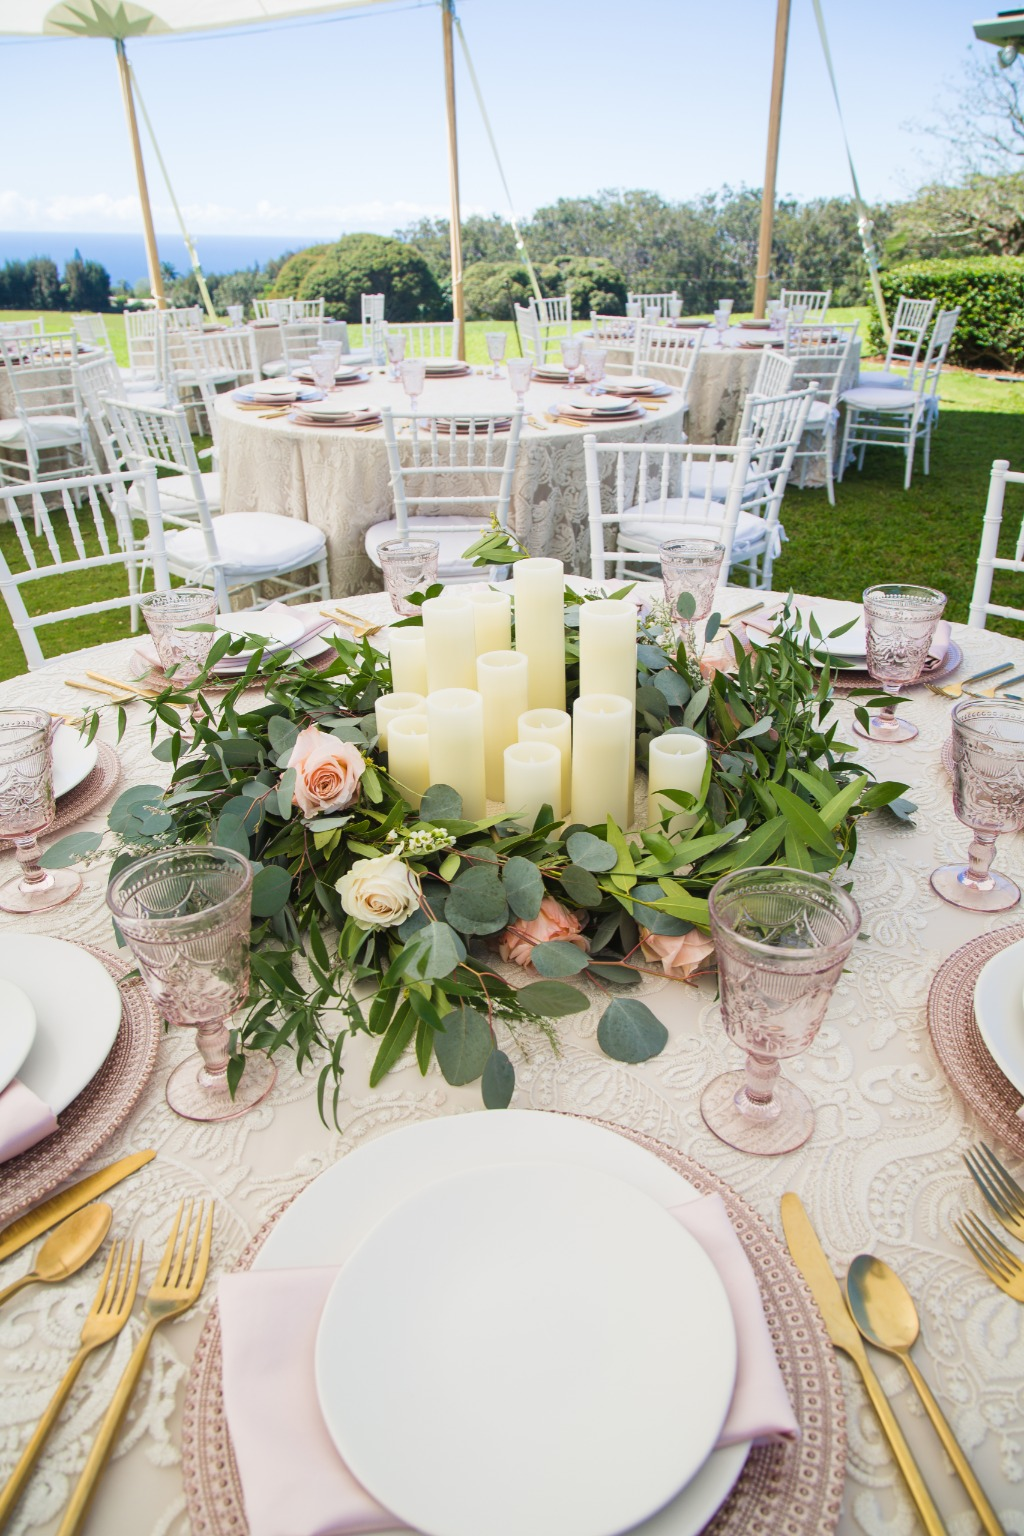 Pink and gold place settings gives off such an elegant look!